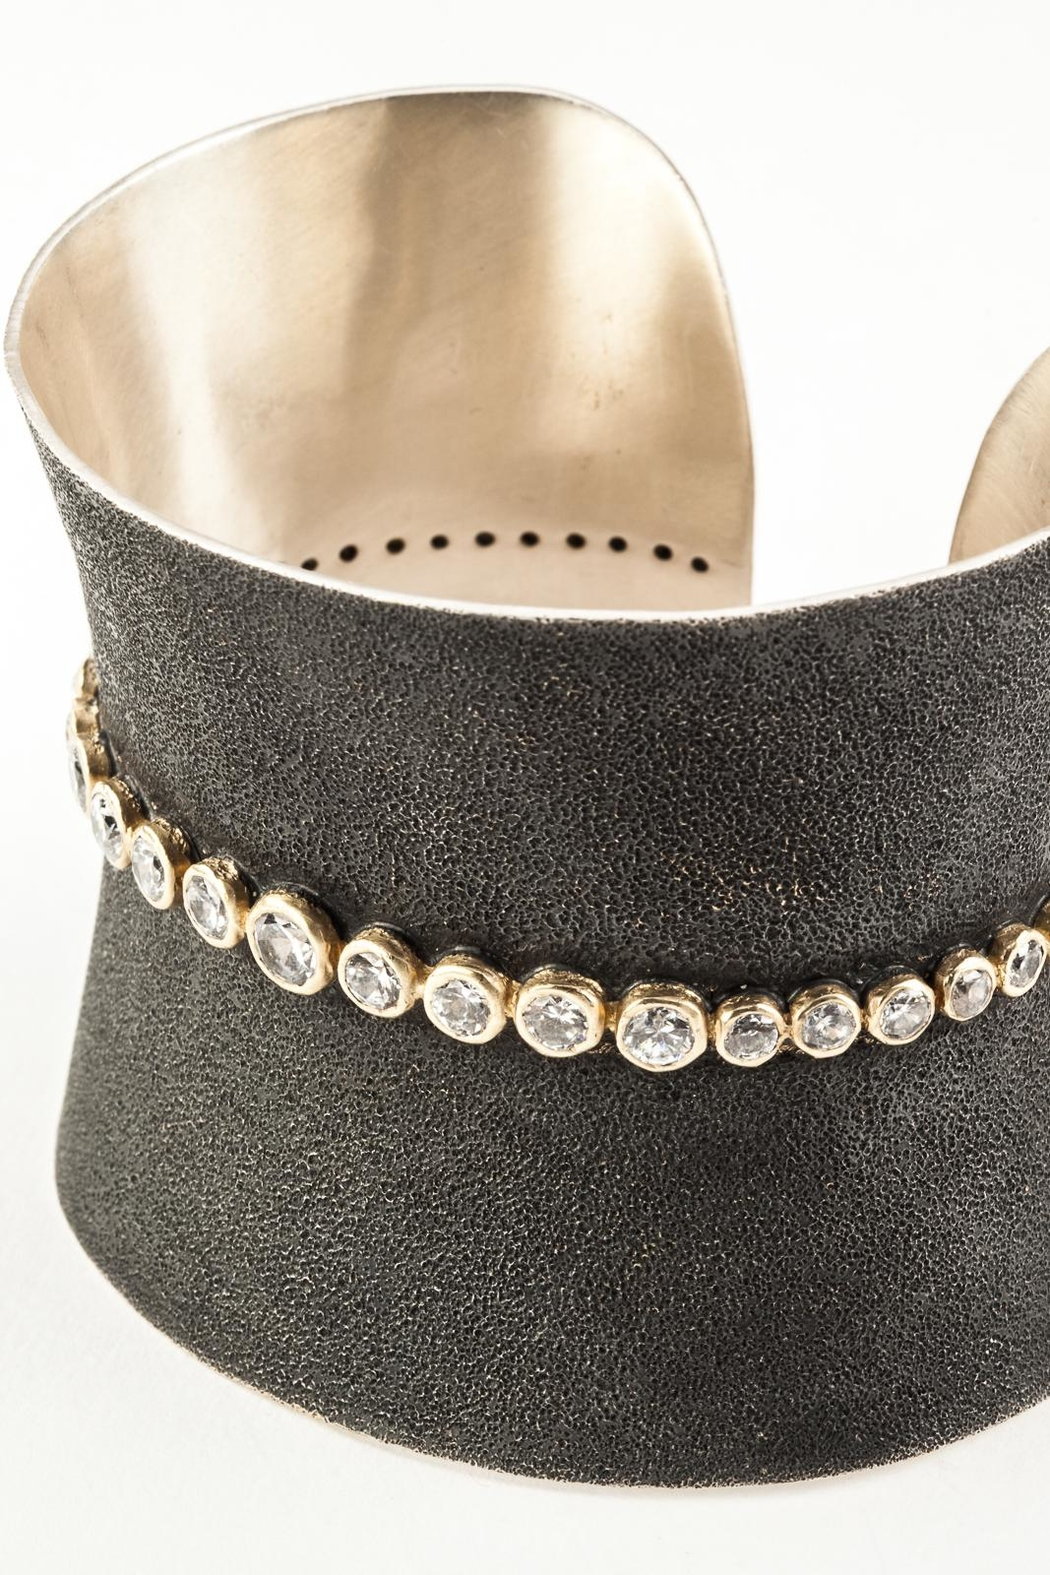 aaRaa Oxidized Silver Cuff - Front Full Image